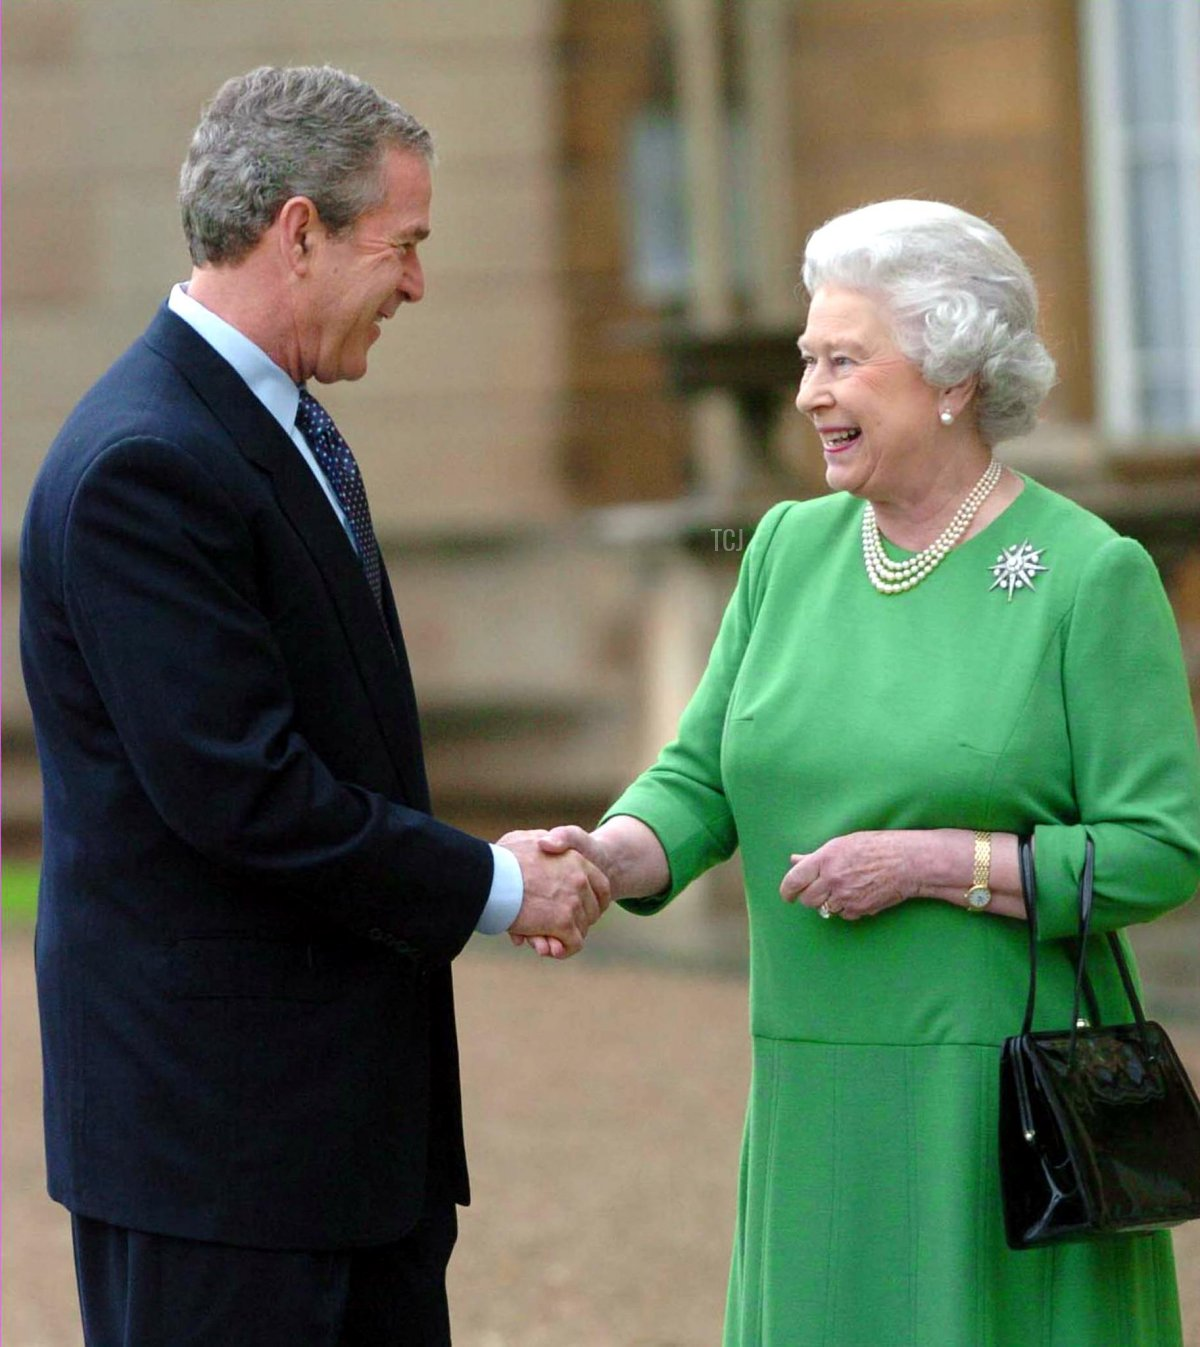 US President George W. Bush bids farewell to Britain's Queen Elizabeth II at Buckingham Palace, 21 November 2003, before traveling to the Sedgefield constituency of British Prime Minister Tony Blair. President Bush and his wife are on the last day of their three-day state visit to the UK